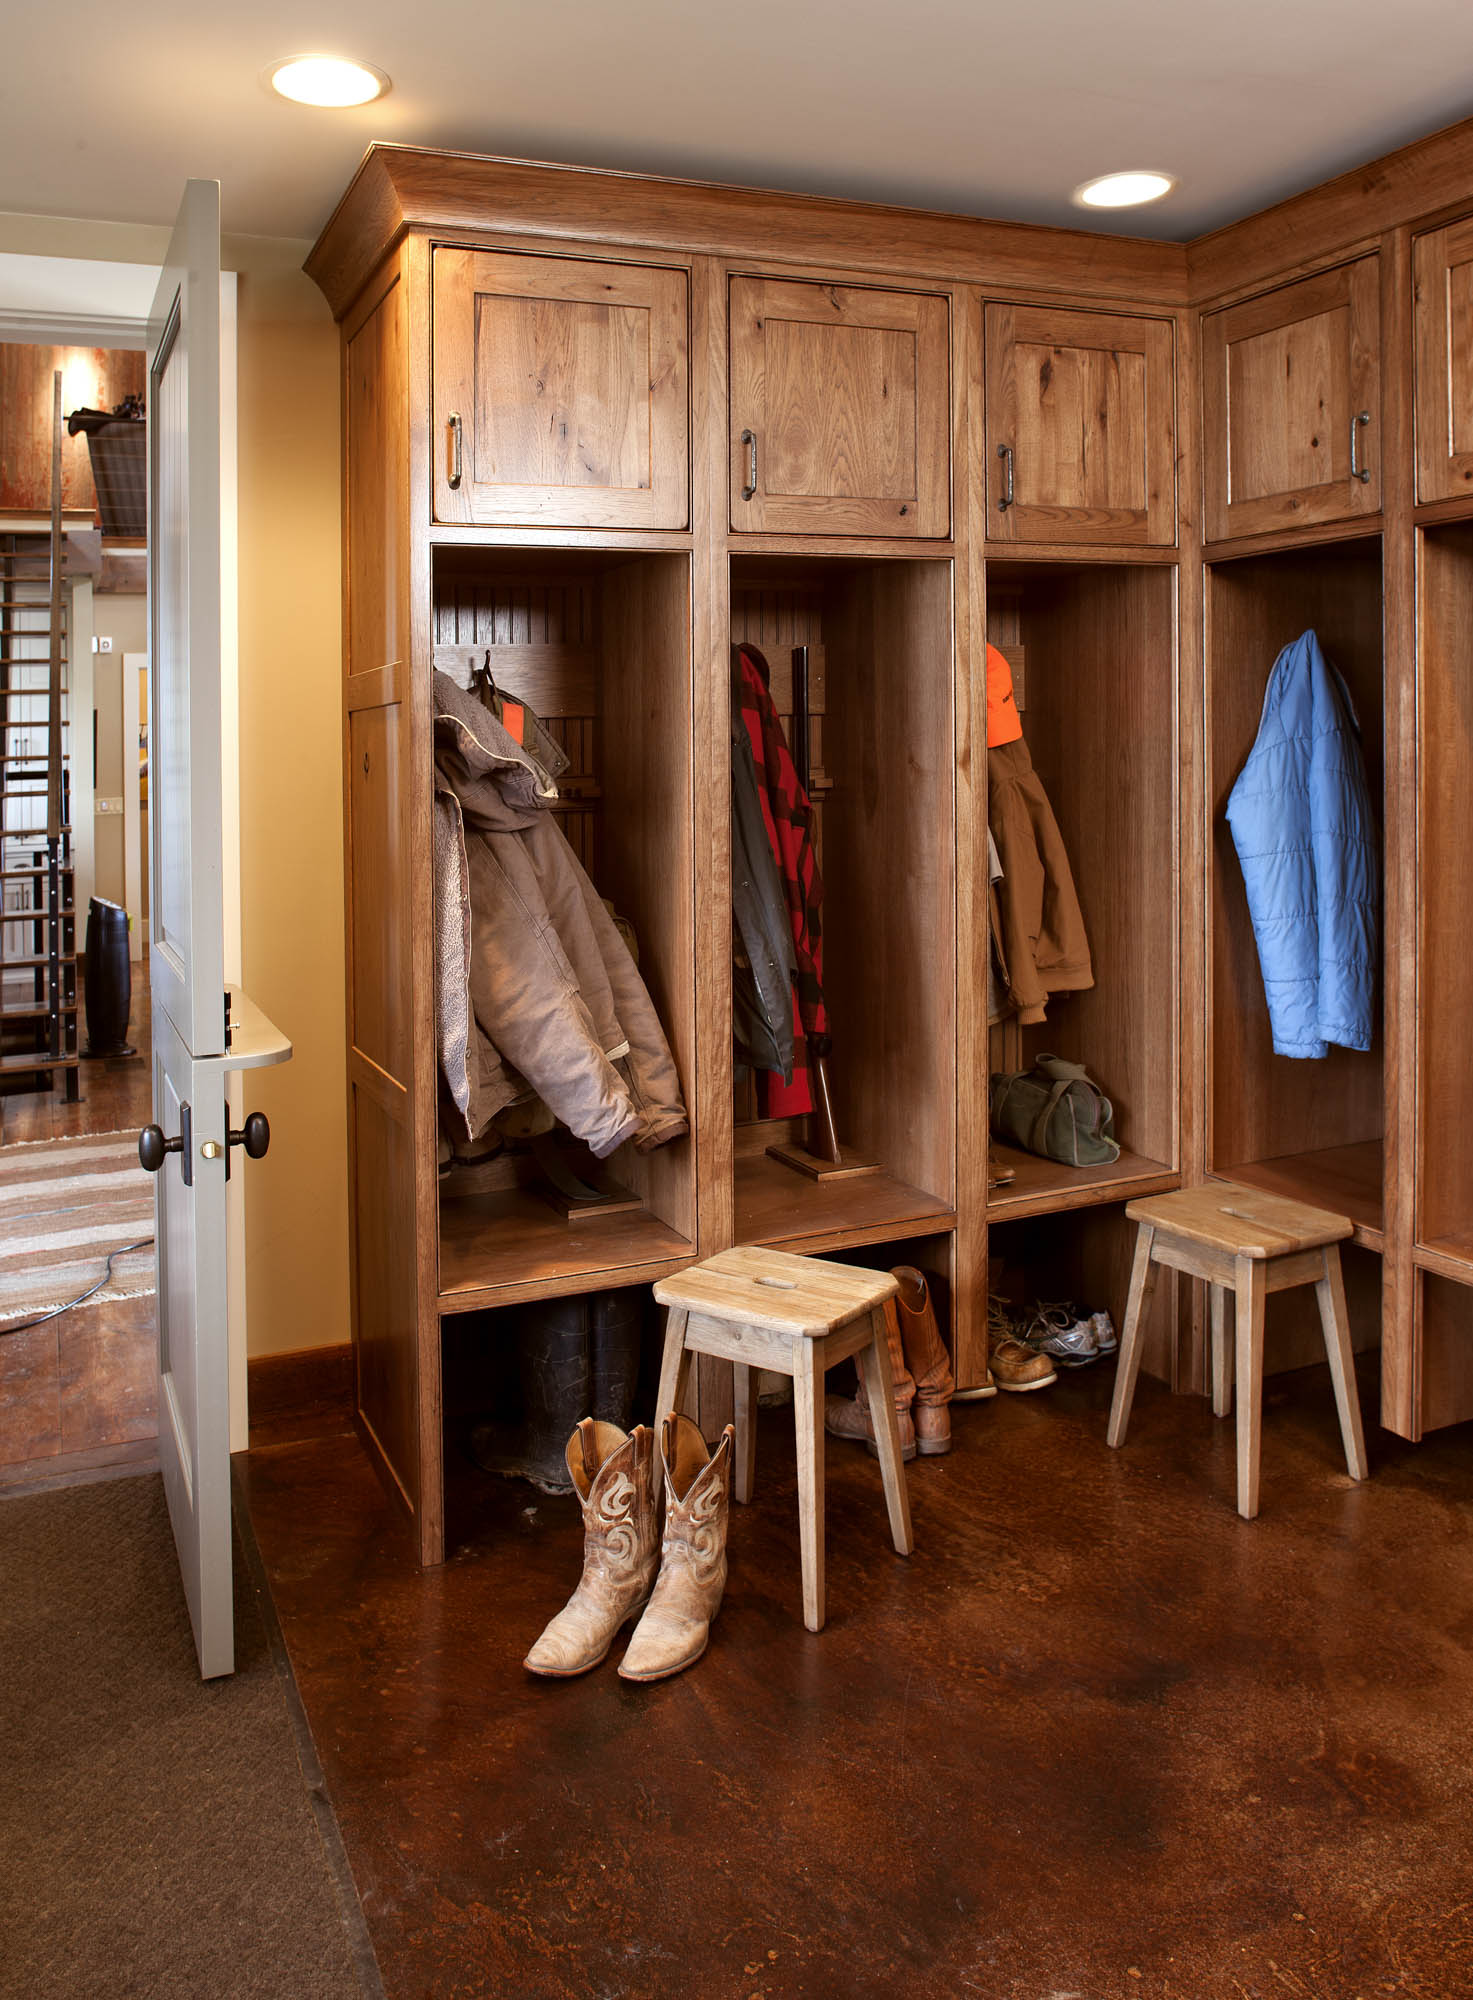 Stained mud room locker in Truffle with Ebony Glaze by Showplace Cabinetry - view 1